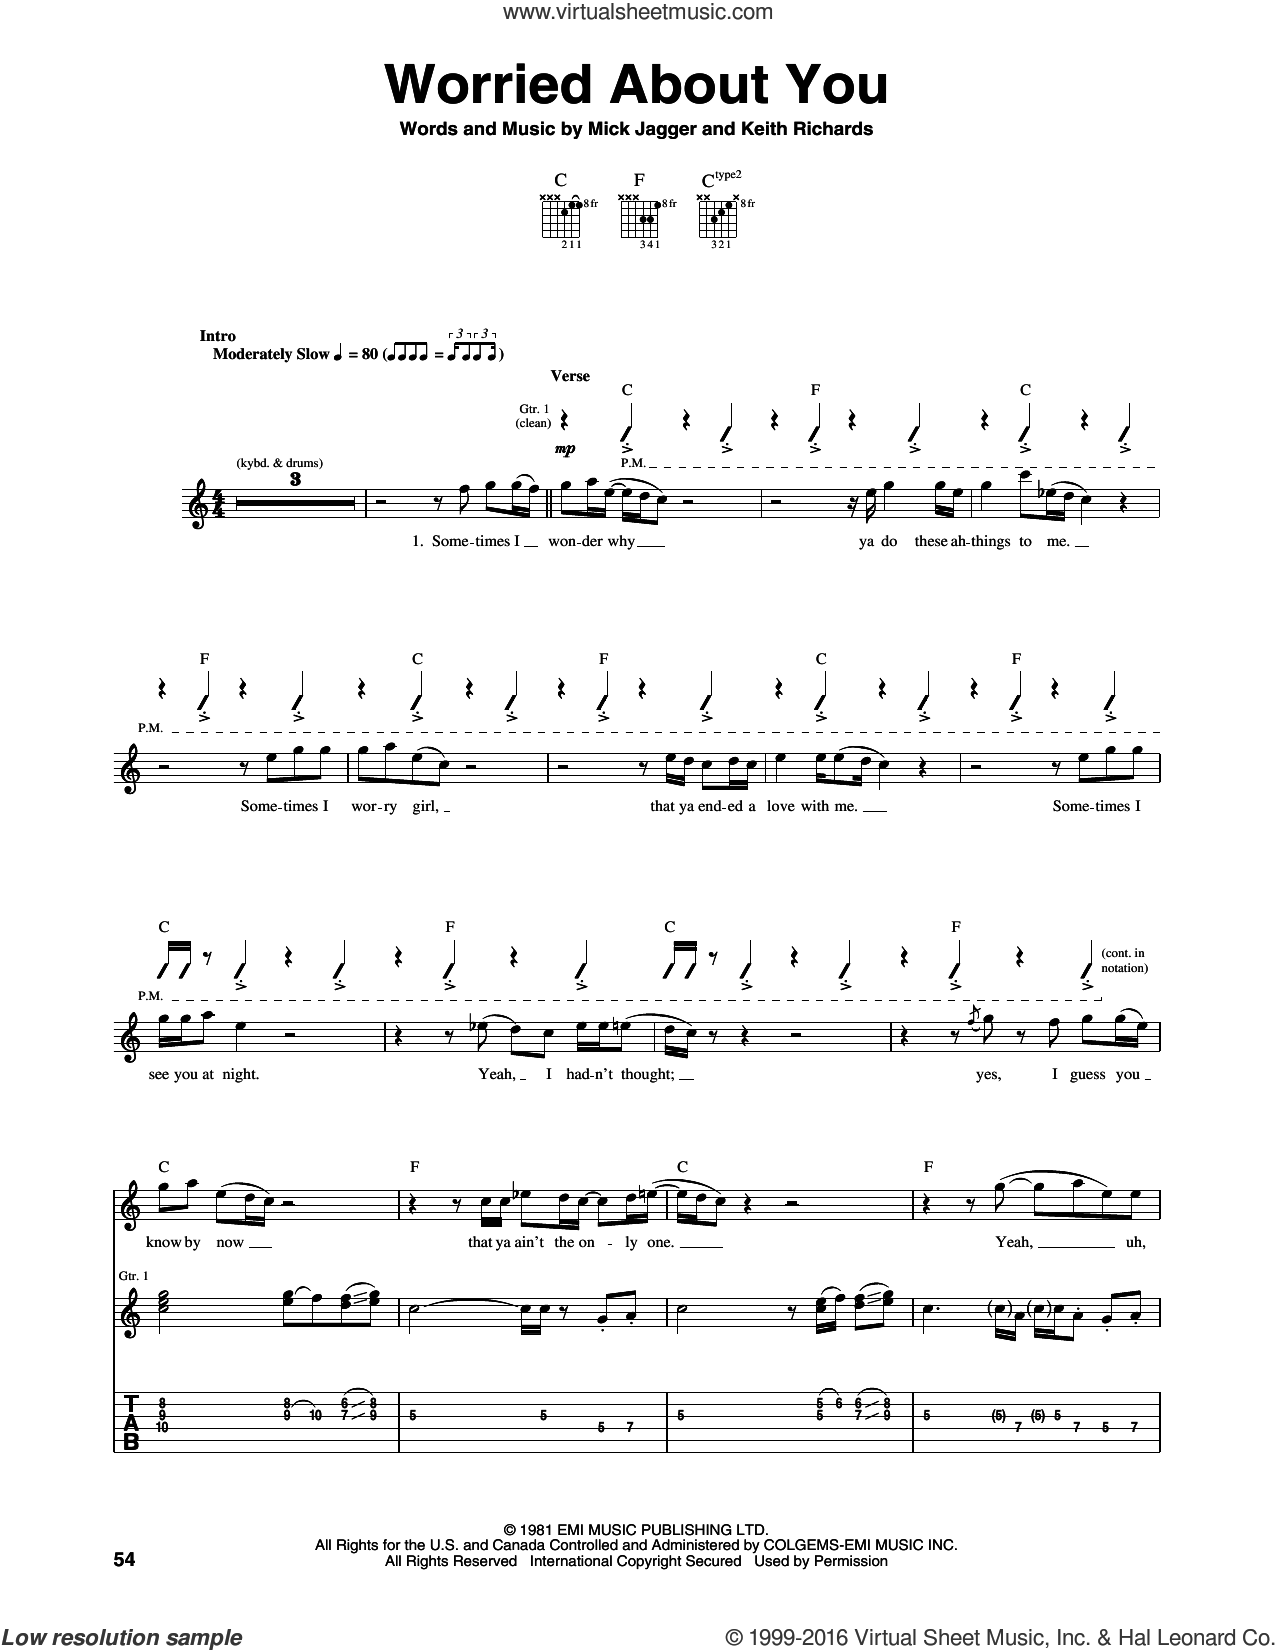 Worried About You sheet music for guitar (tablature) by Mick Jagger, The Rolling Stones and Keith Richards. Score Image Preview.